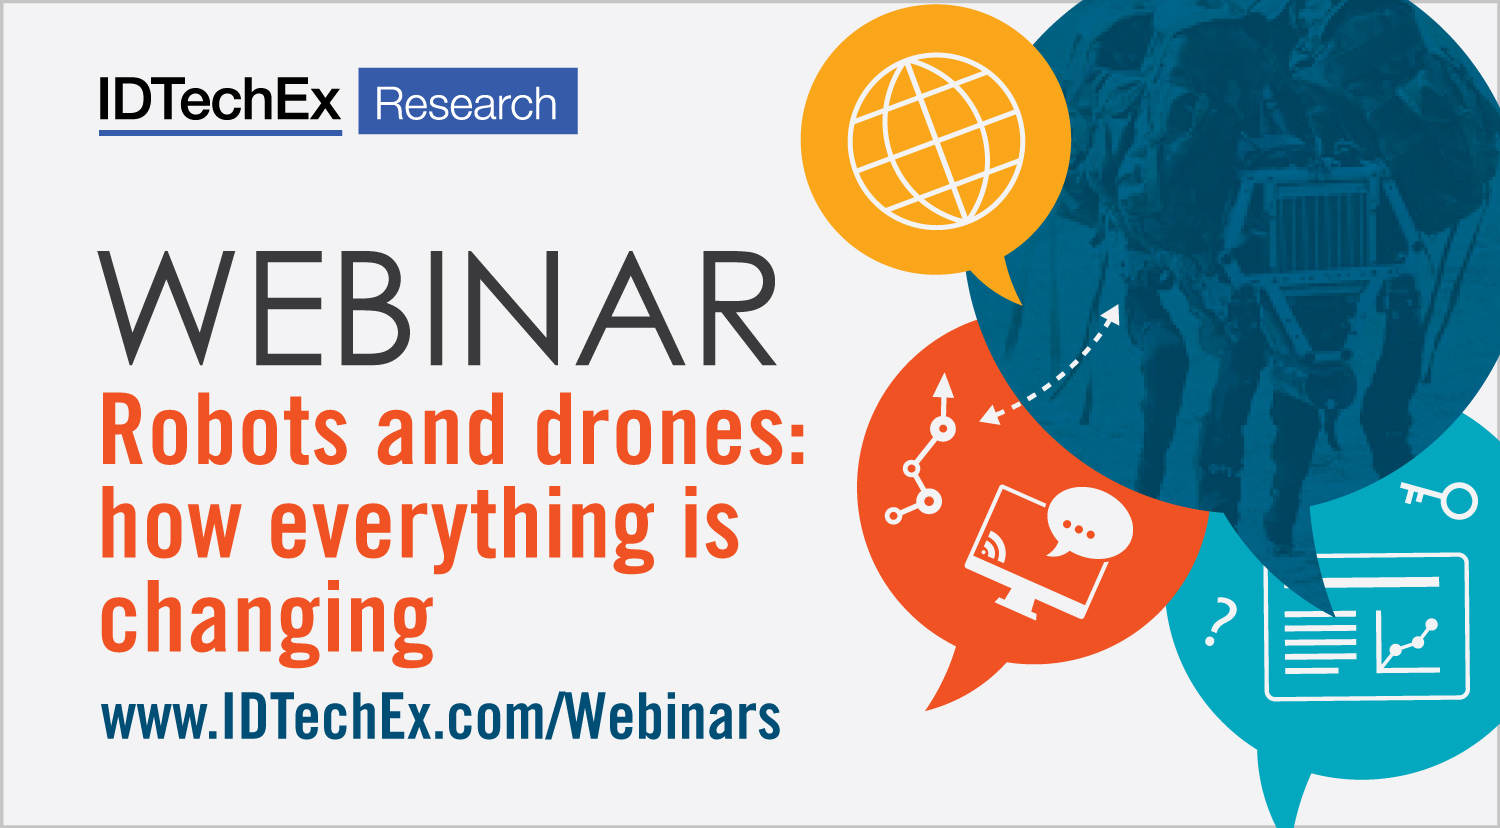 Robots and drones: how everything is changing